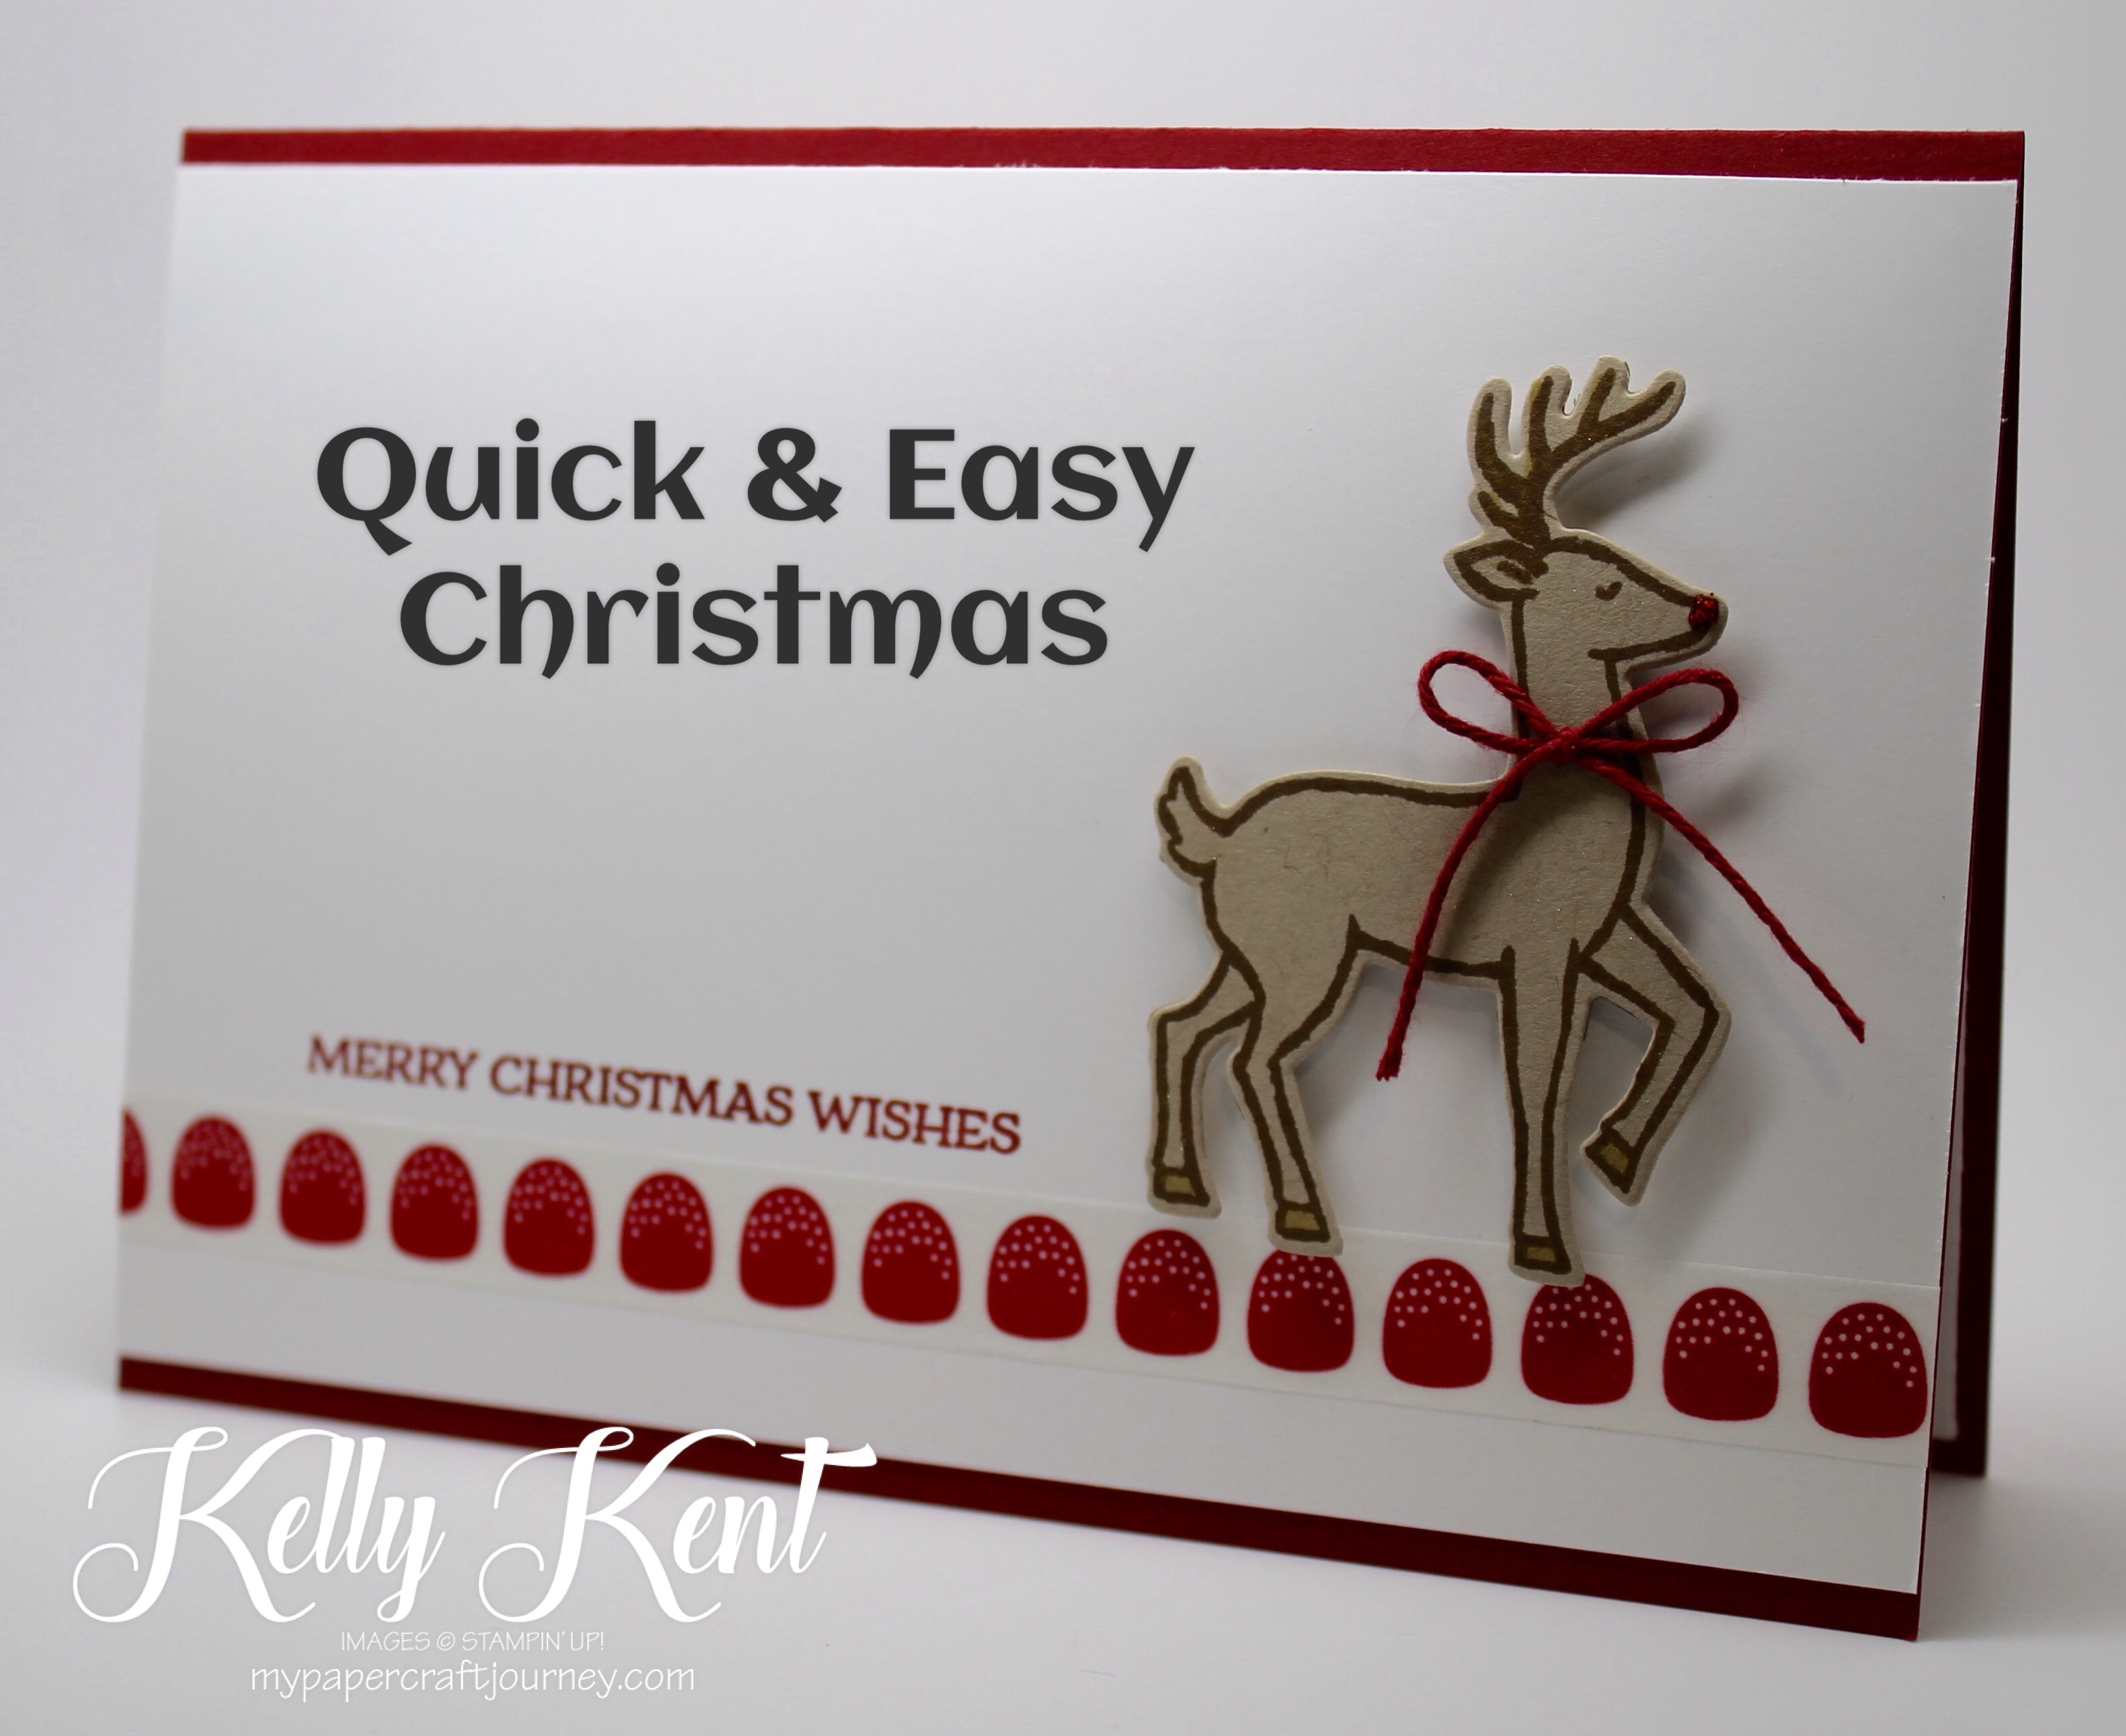 Simple Christmas Cards From The Holiday Catalogue Kelly Kent